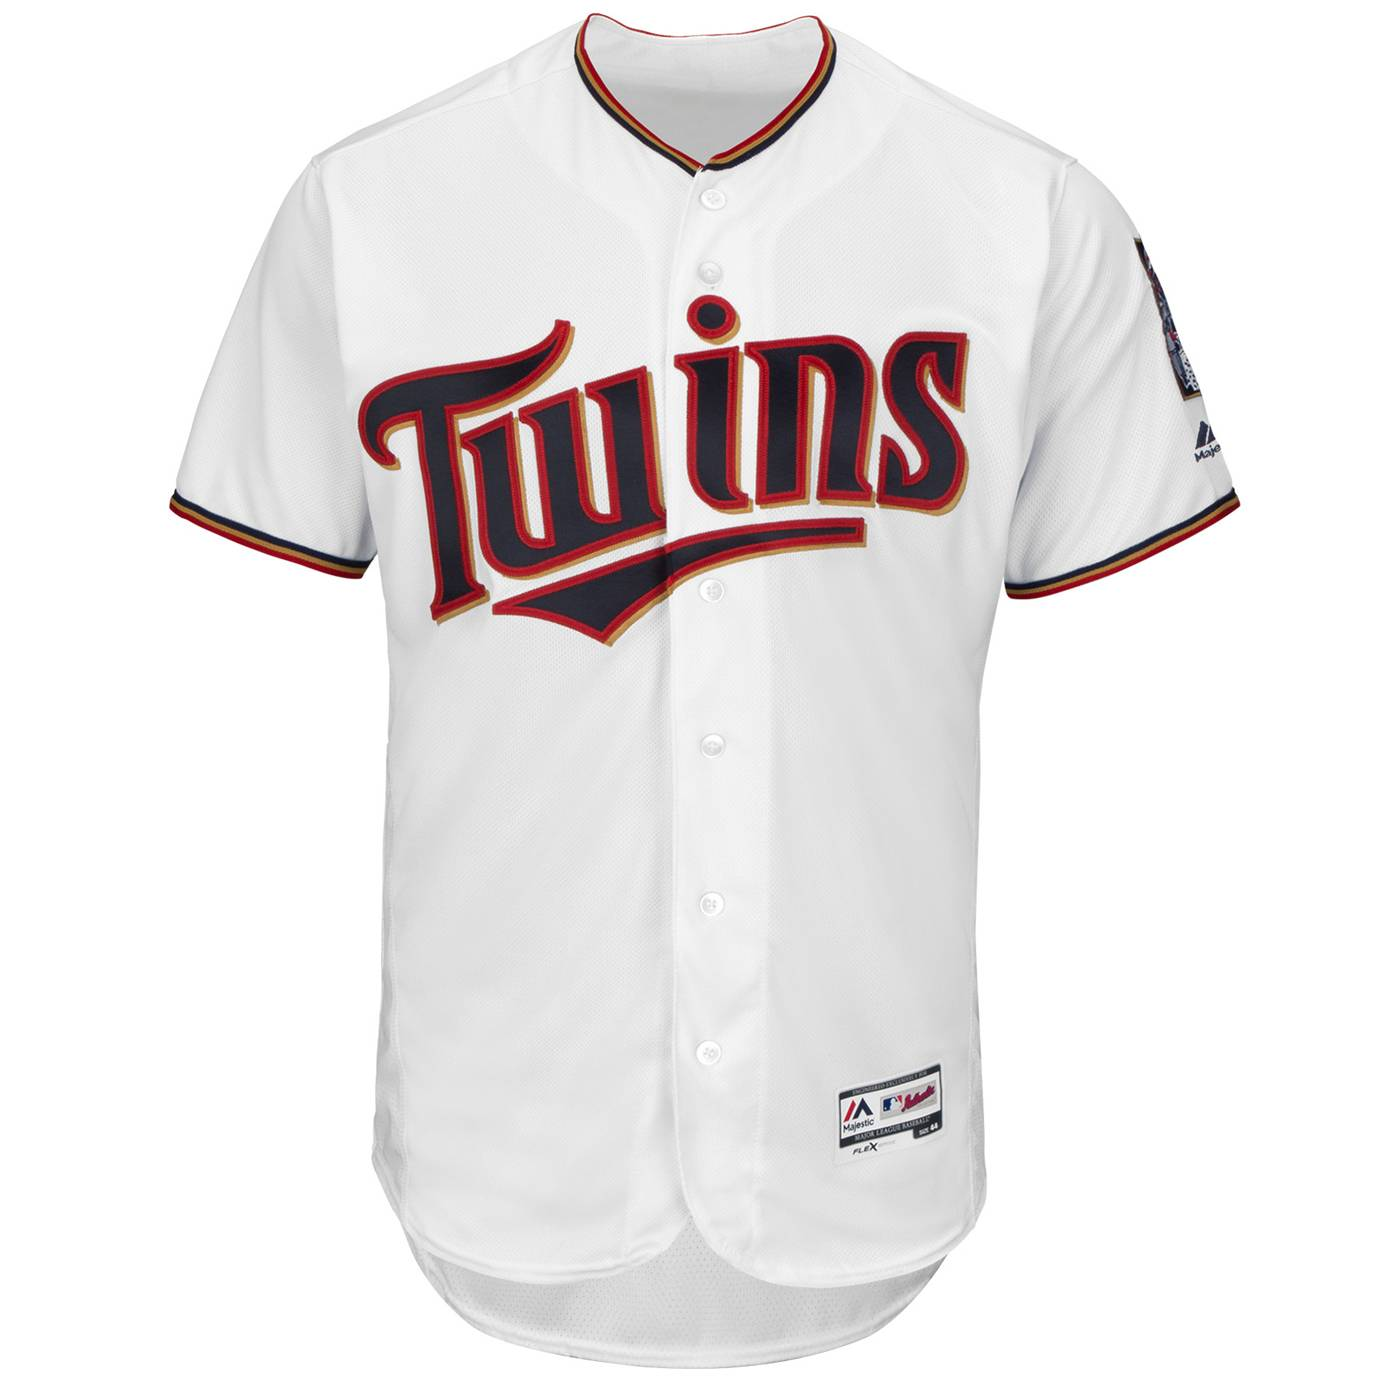 27ccd0124d7 Minnesota Twins Miguel Sano Authentic Home Baseball Jersey. Click To Zoom  View Full Screen View Full Screen. prev